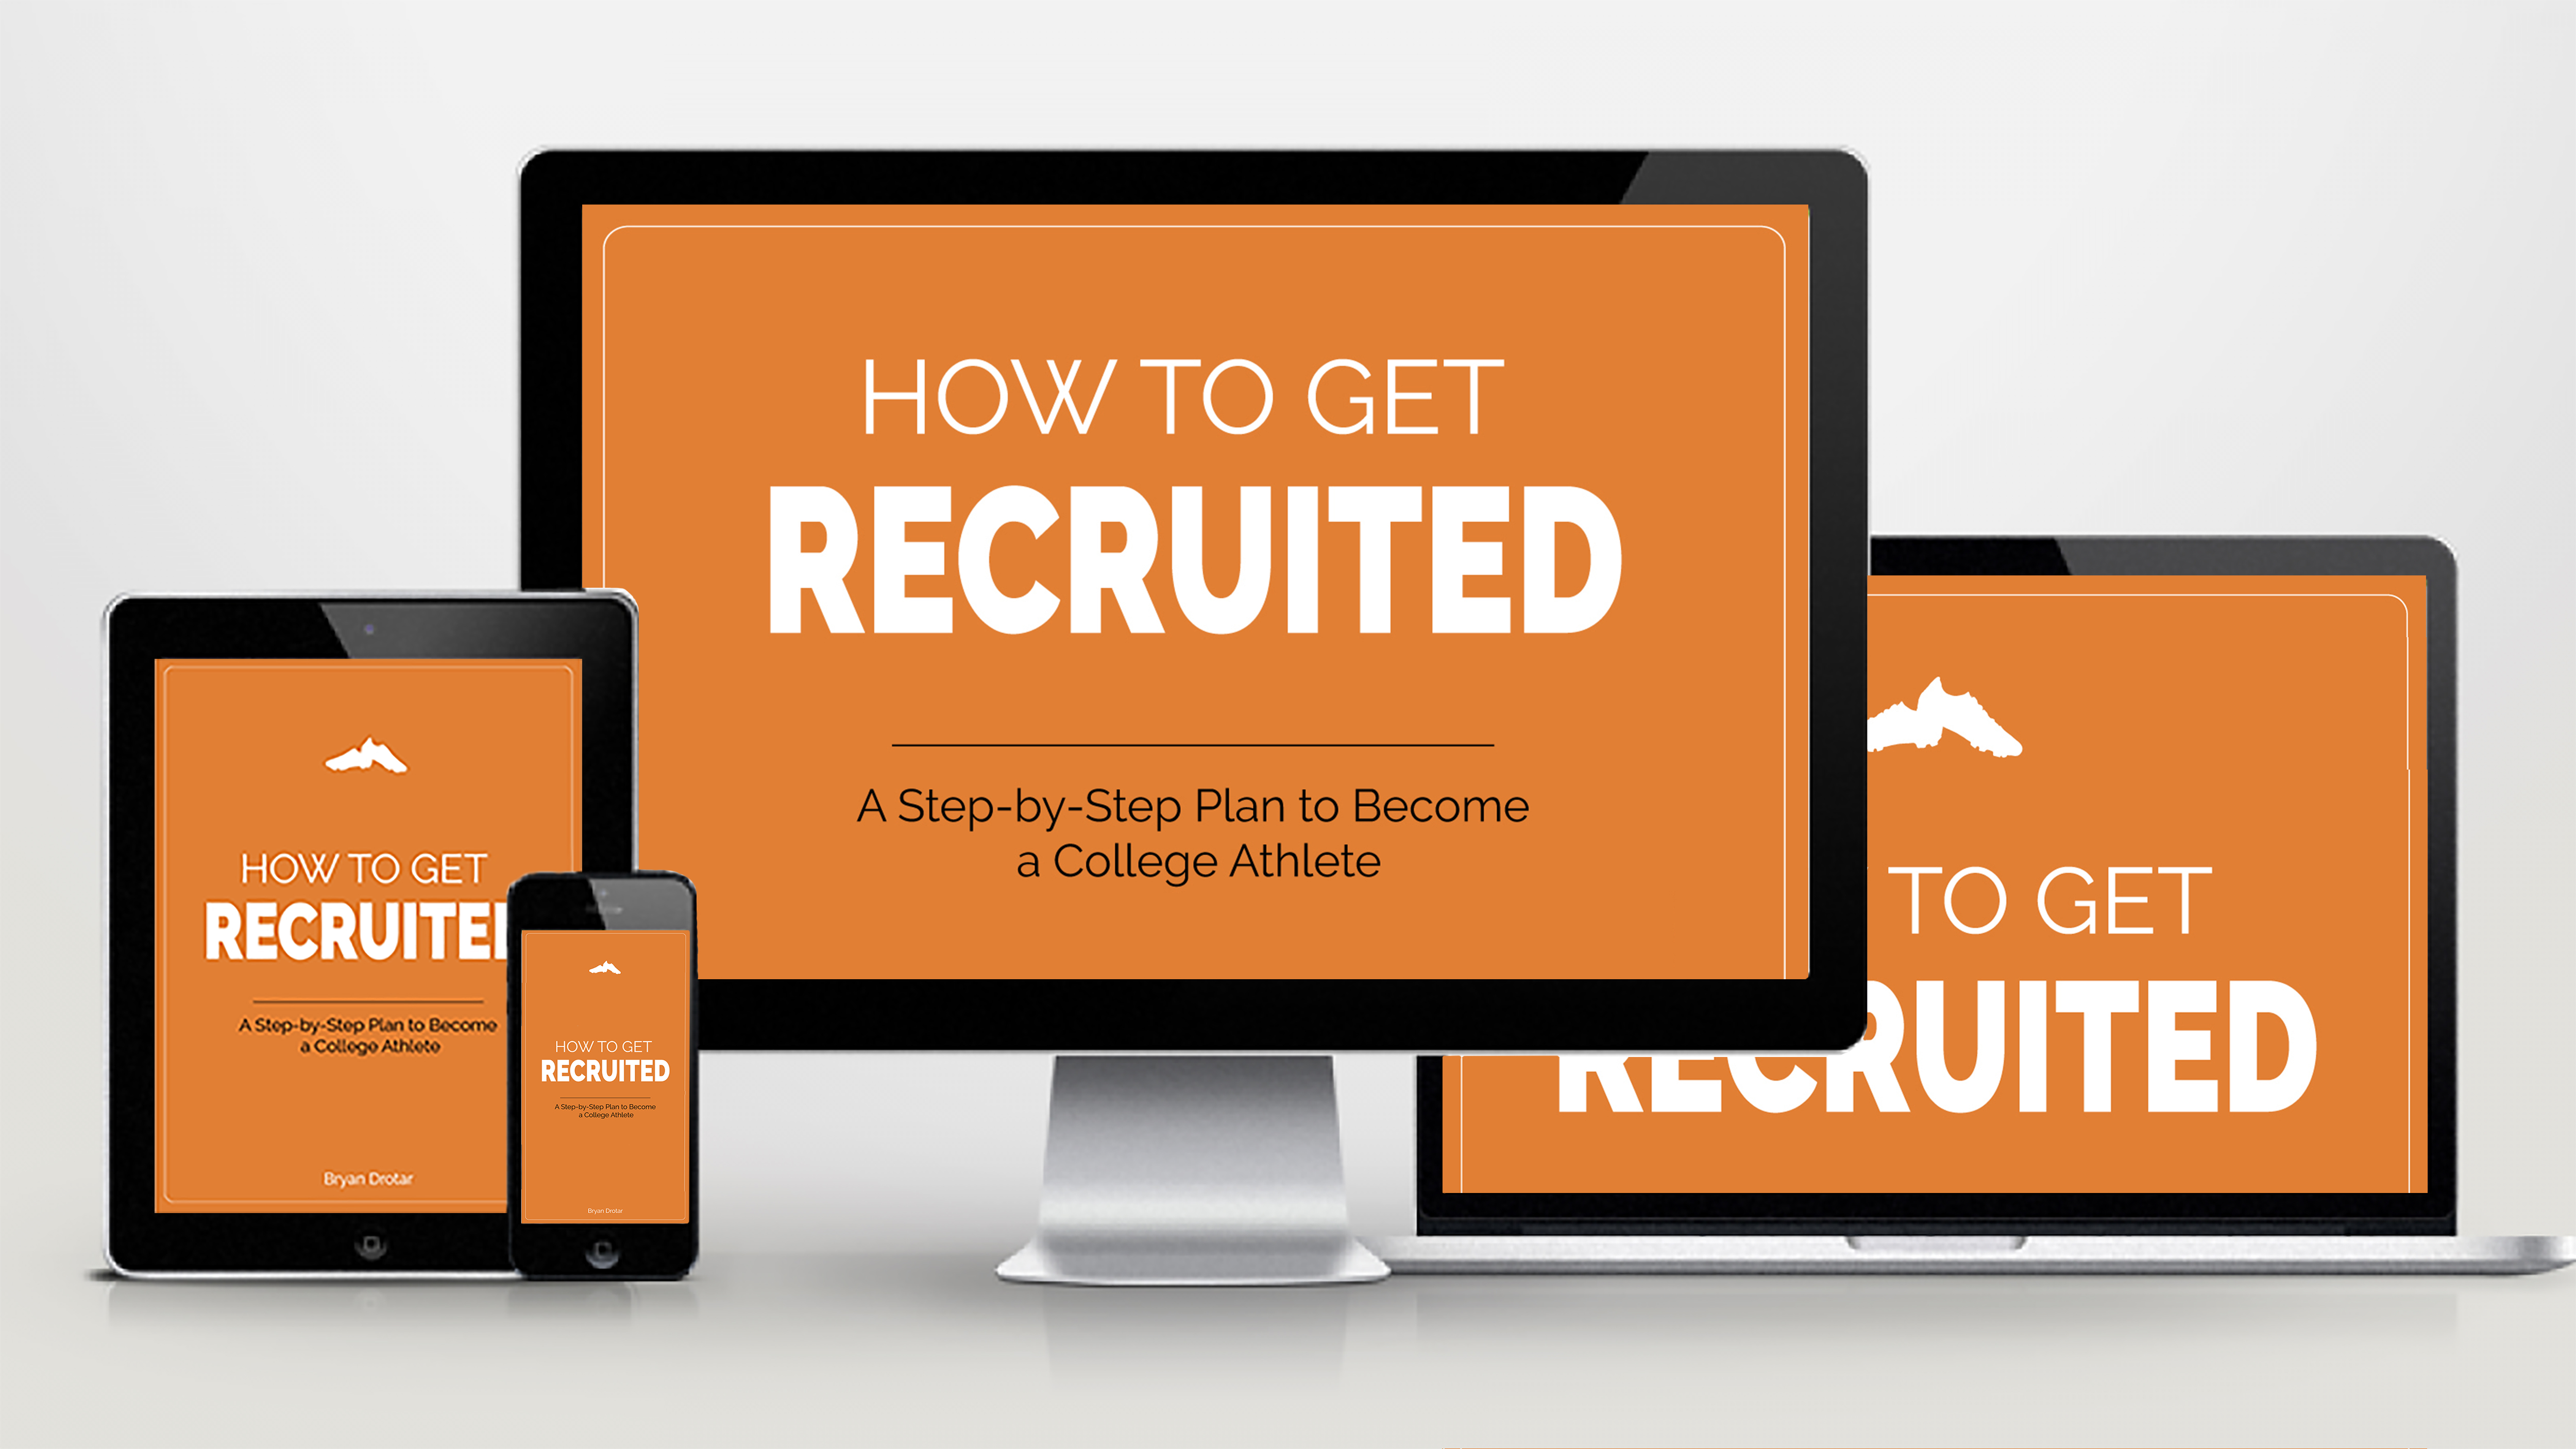 How to Get Recruited Guide